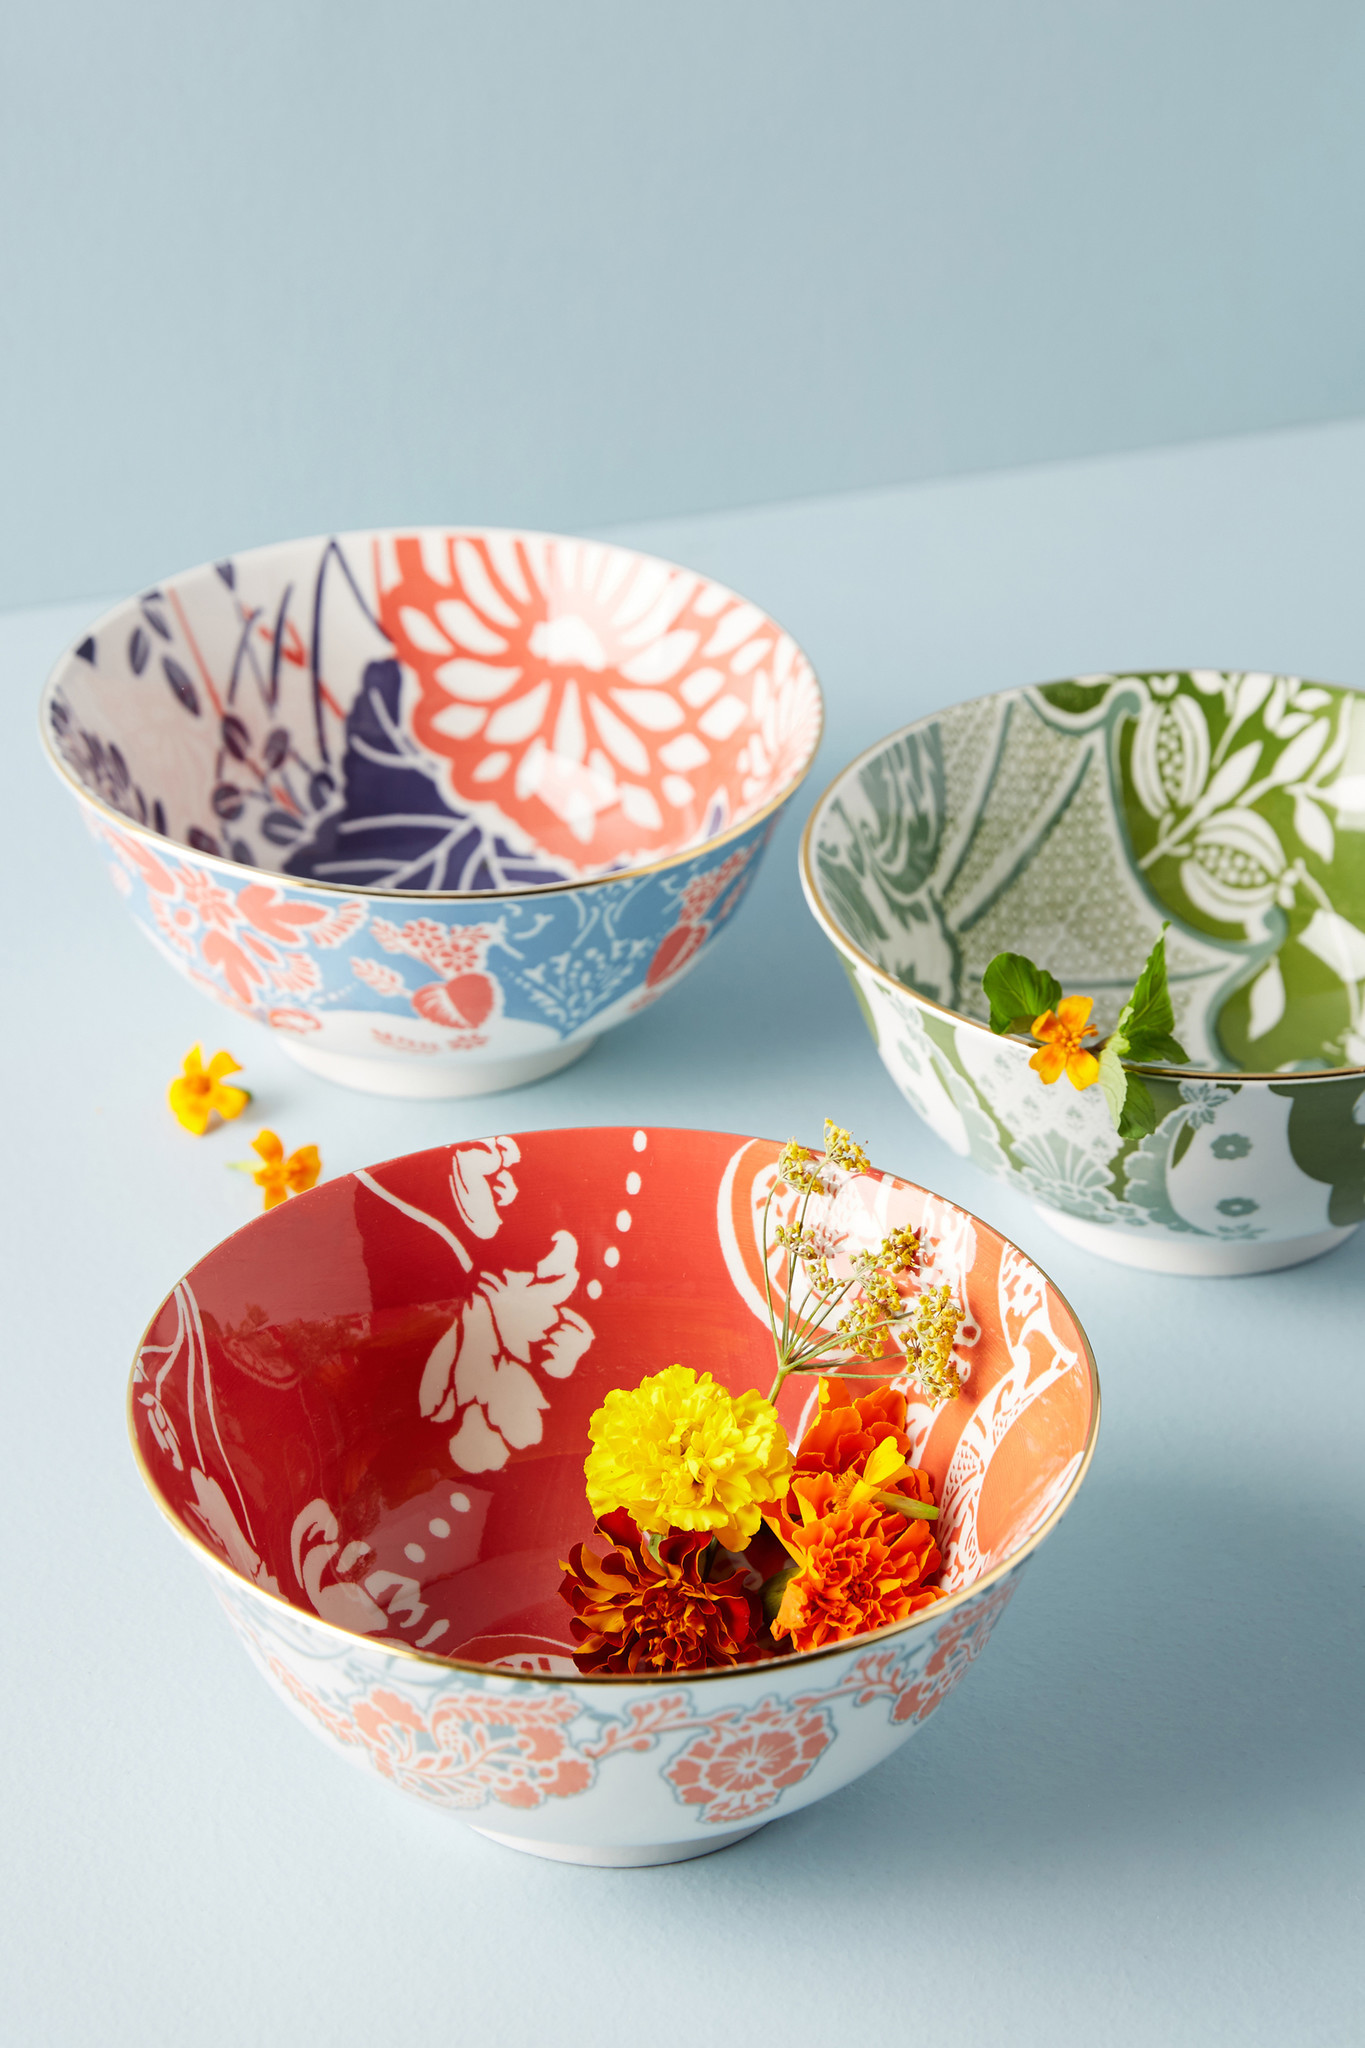 Bowl Game: Evanie cereal bowls, $14 each at Anthropologie. Credit: Anthropologie